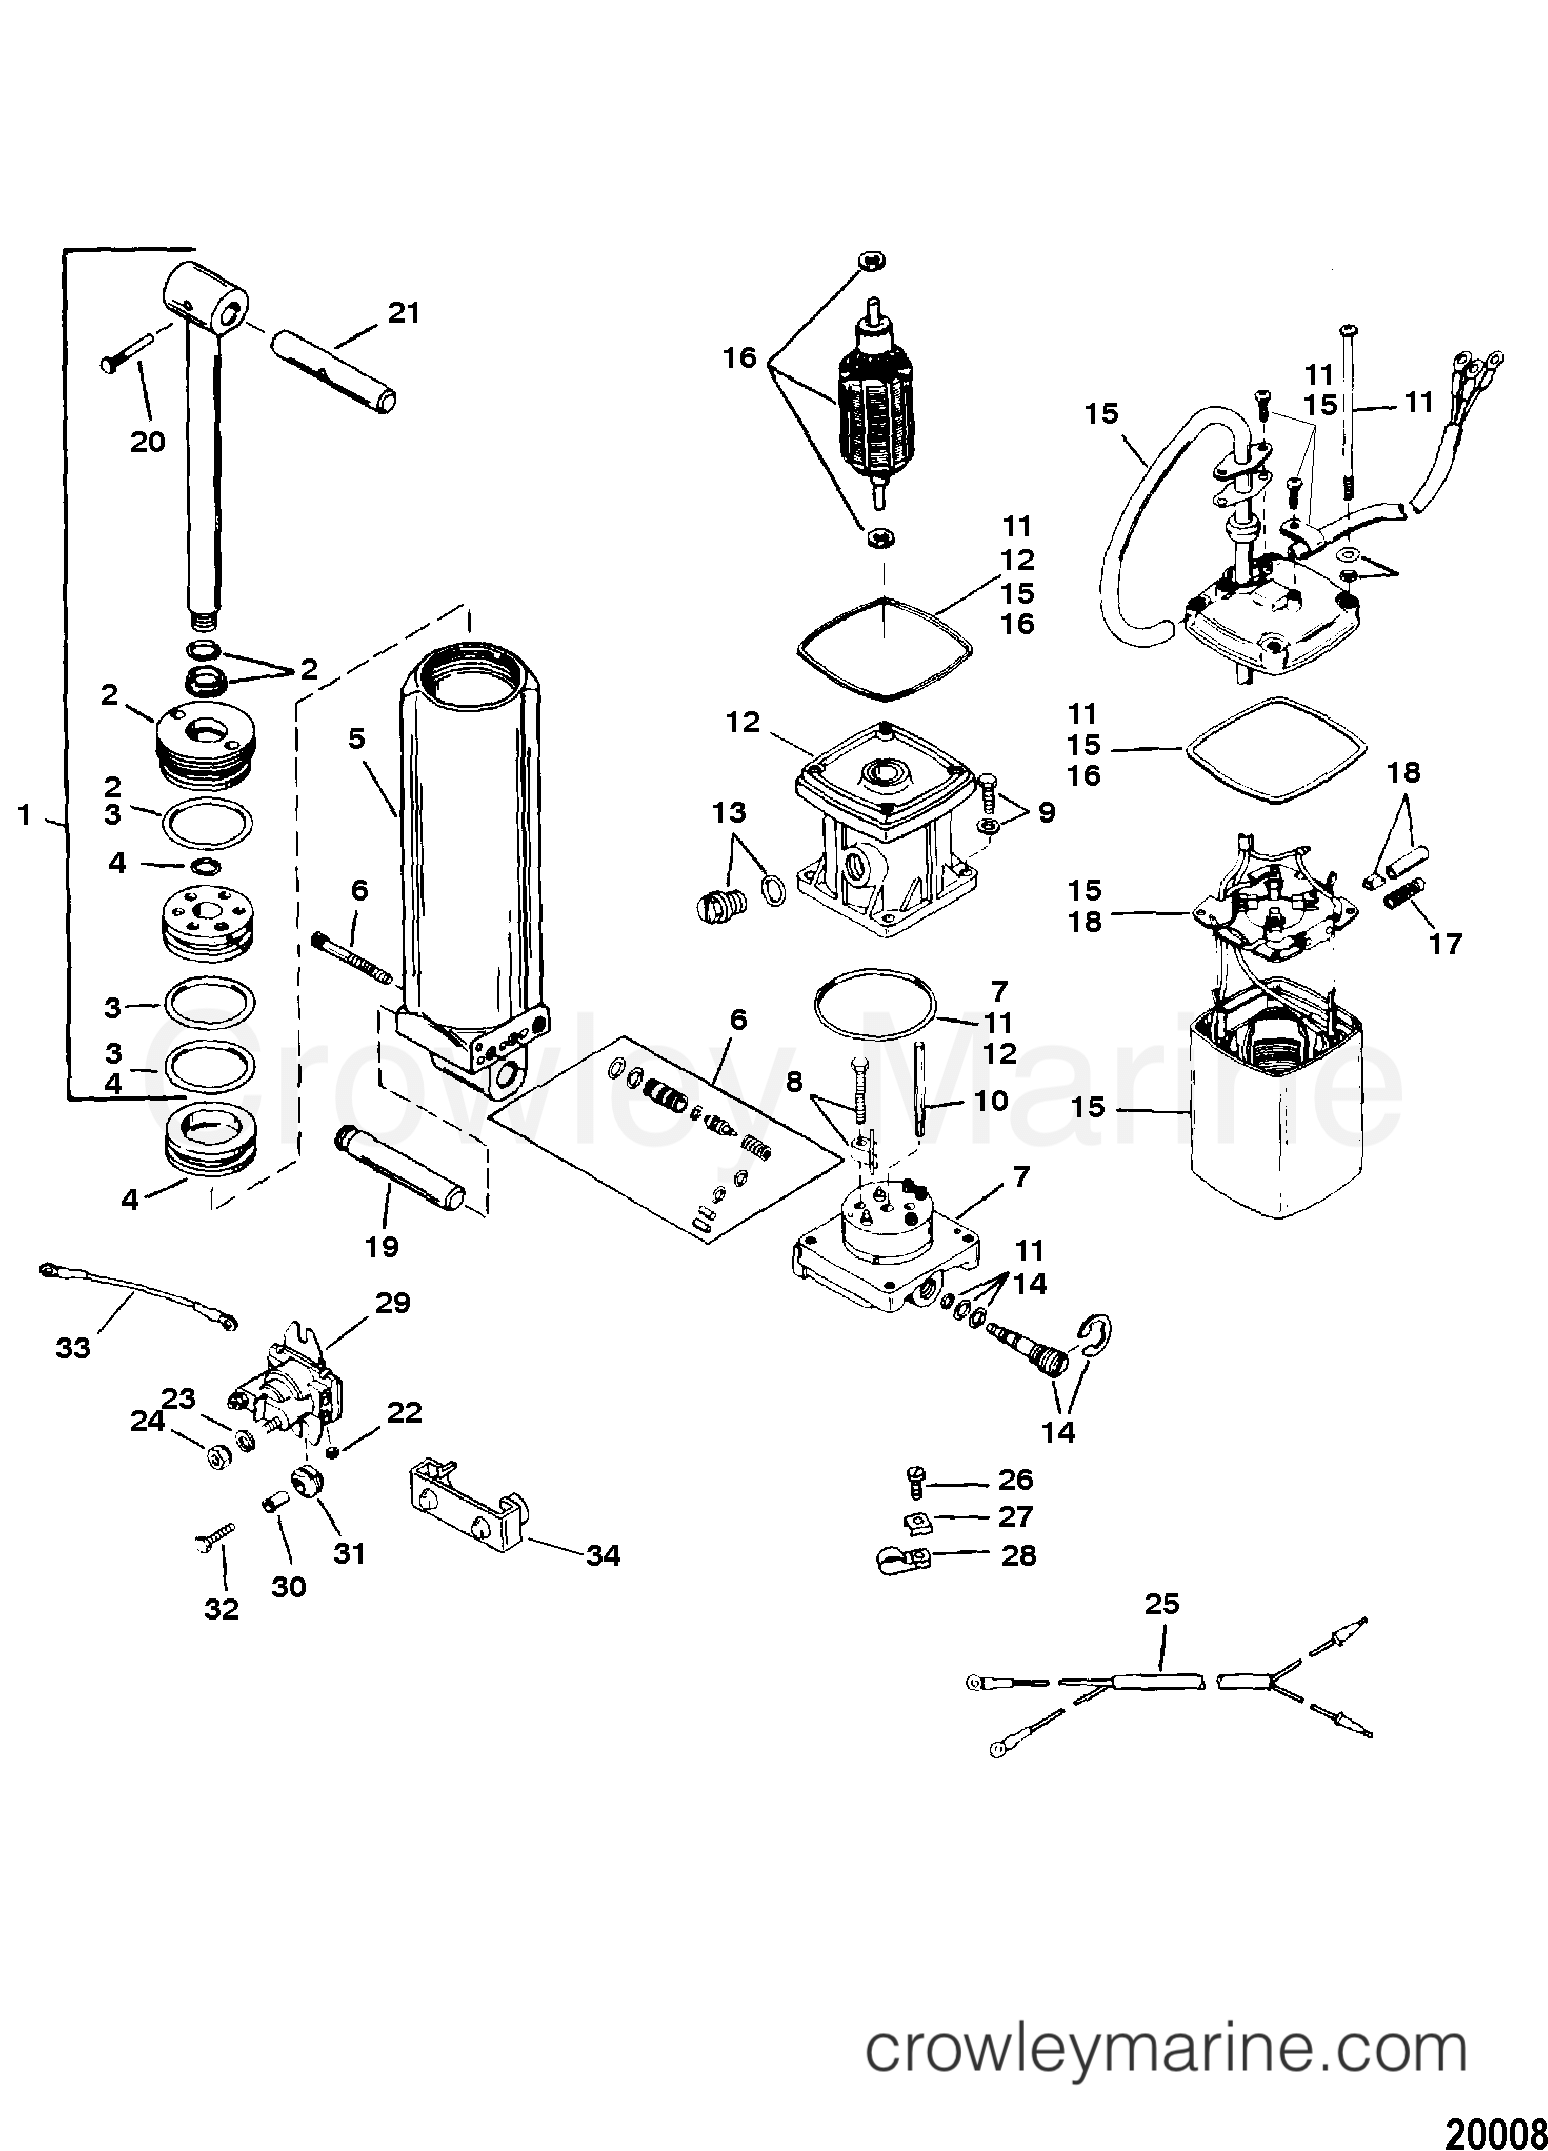 Power Trim Components Design I 1996 Force Outboard 90